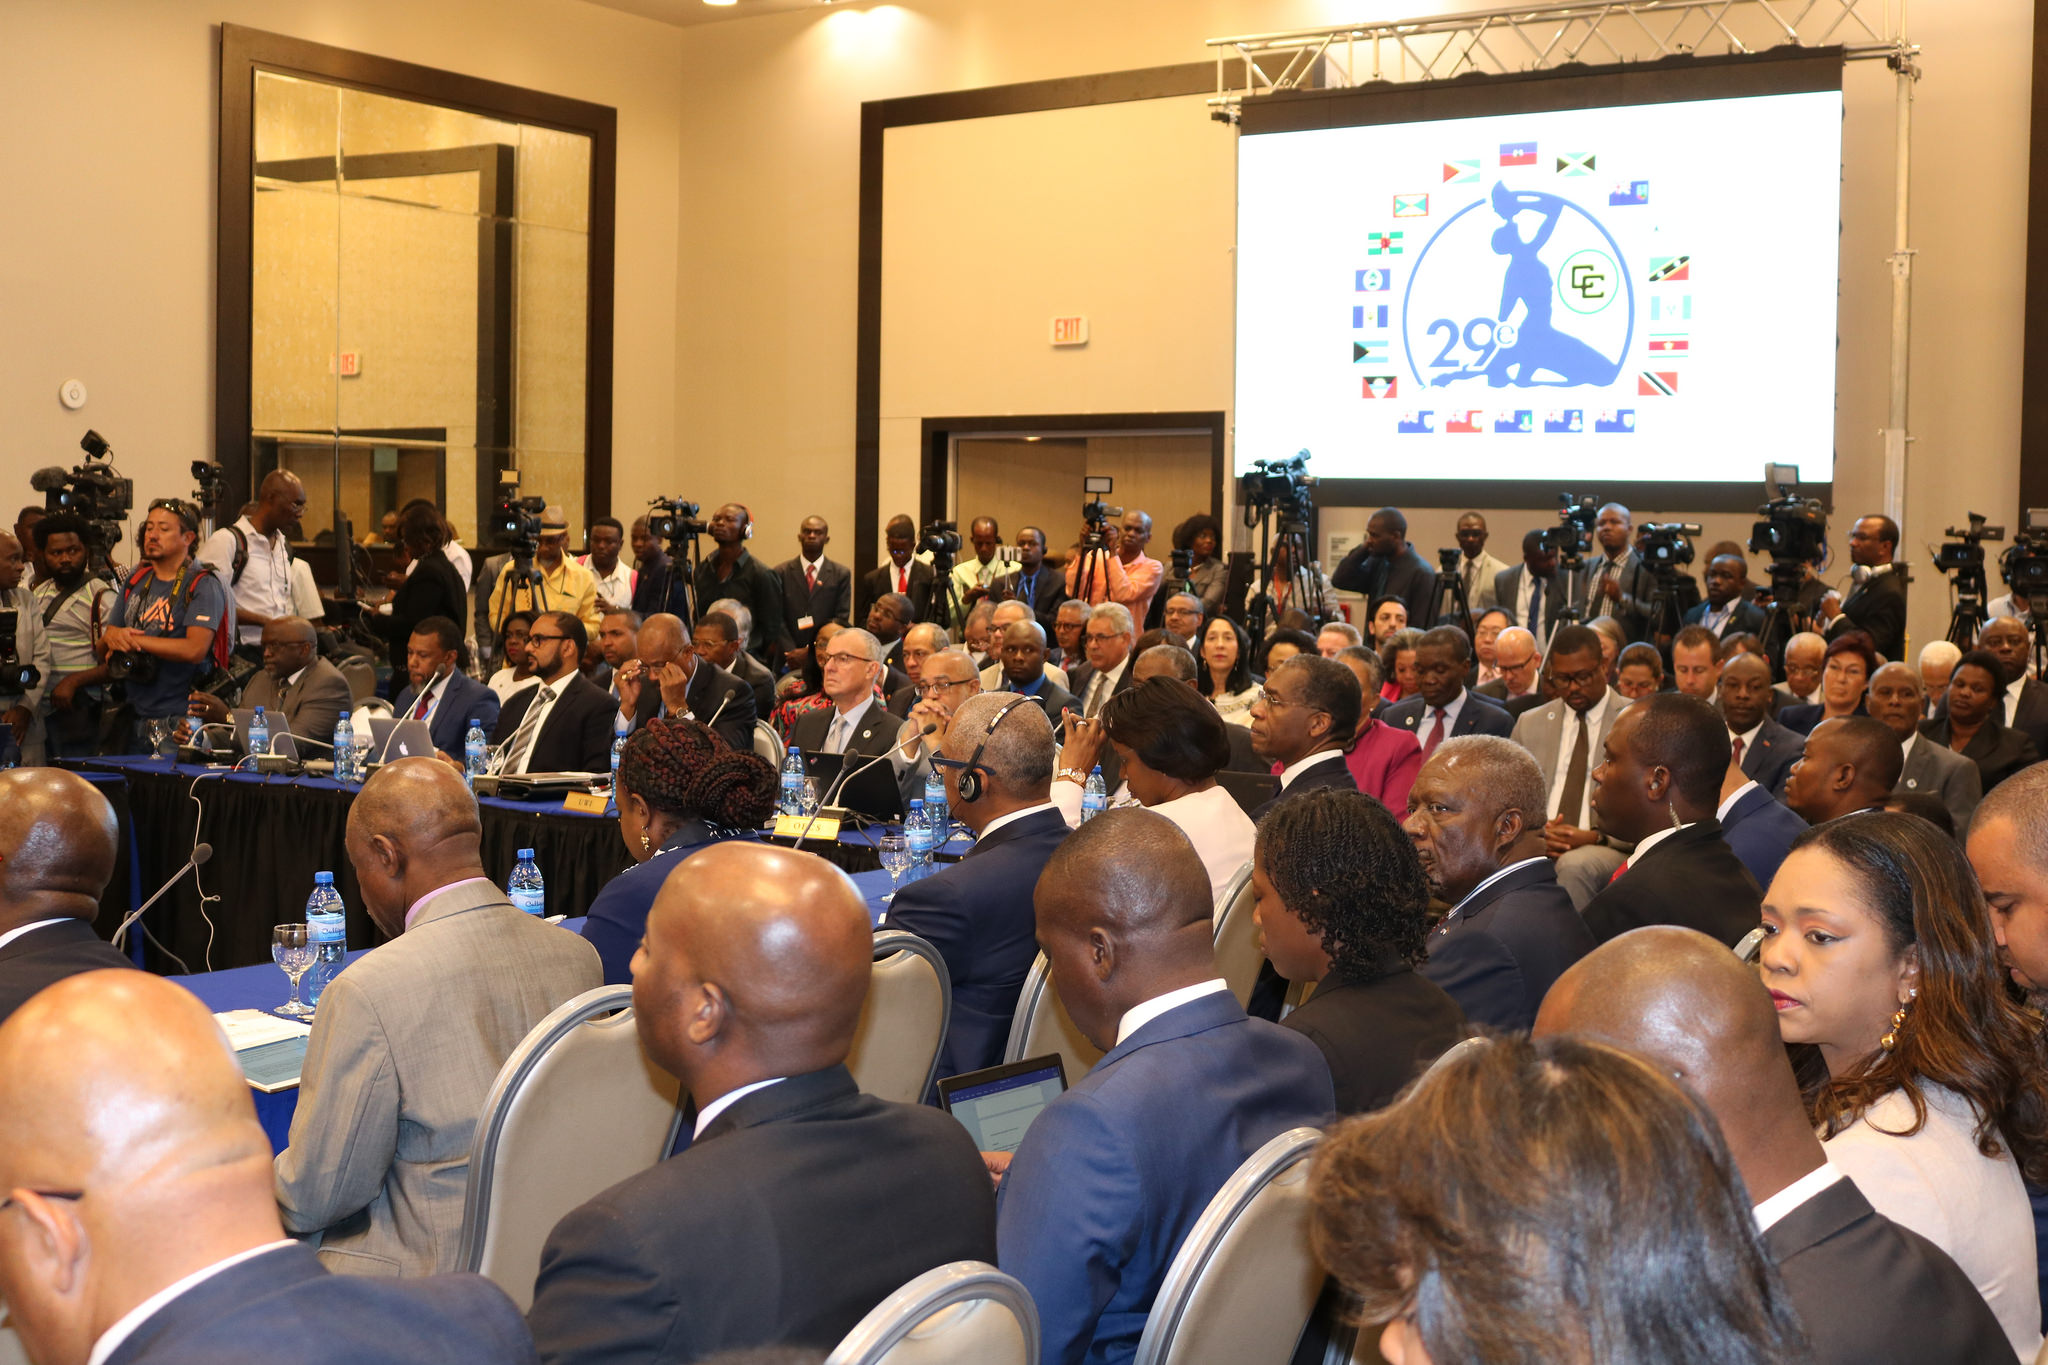 A section of the audience at the opening ceremony of the 29th Intersessional Meeting of the Conference of Heads of Government of CARICOM